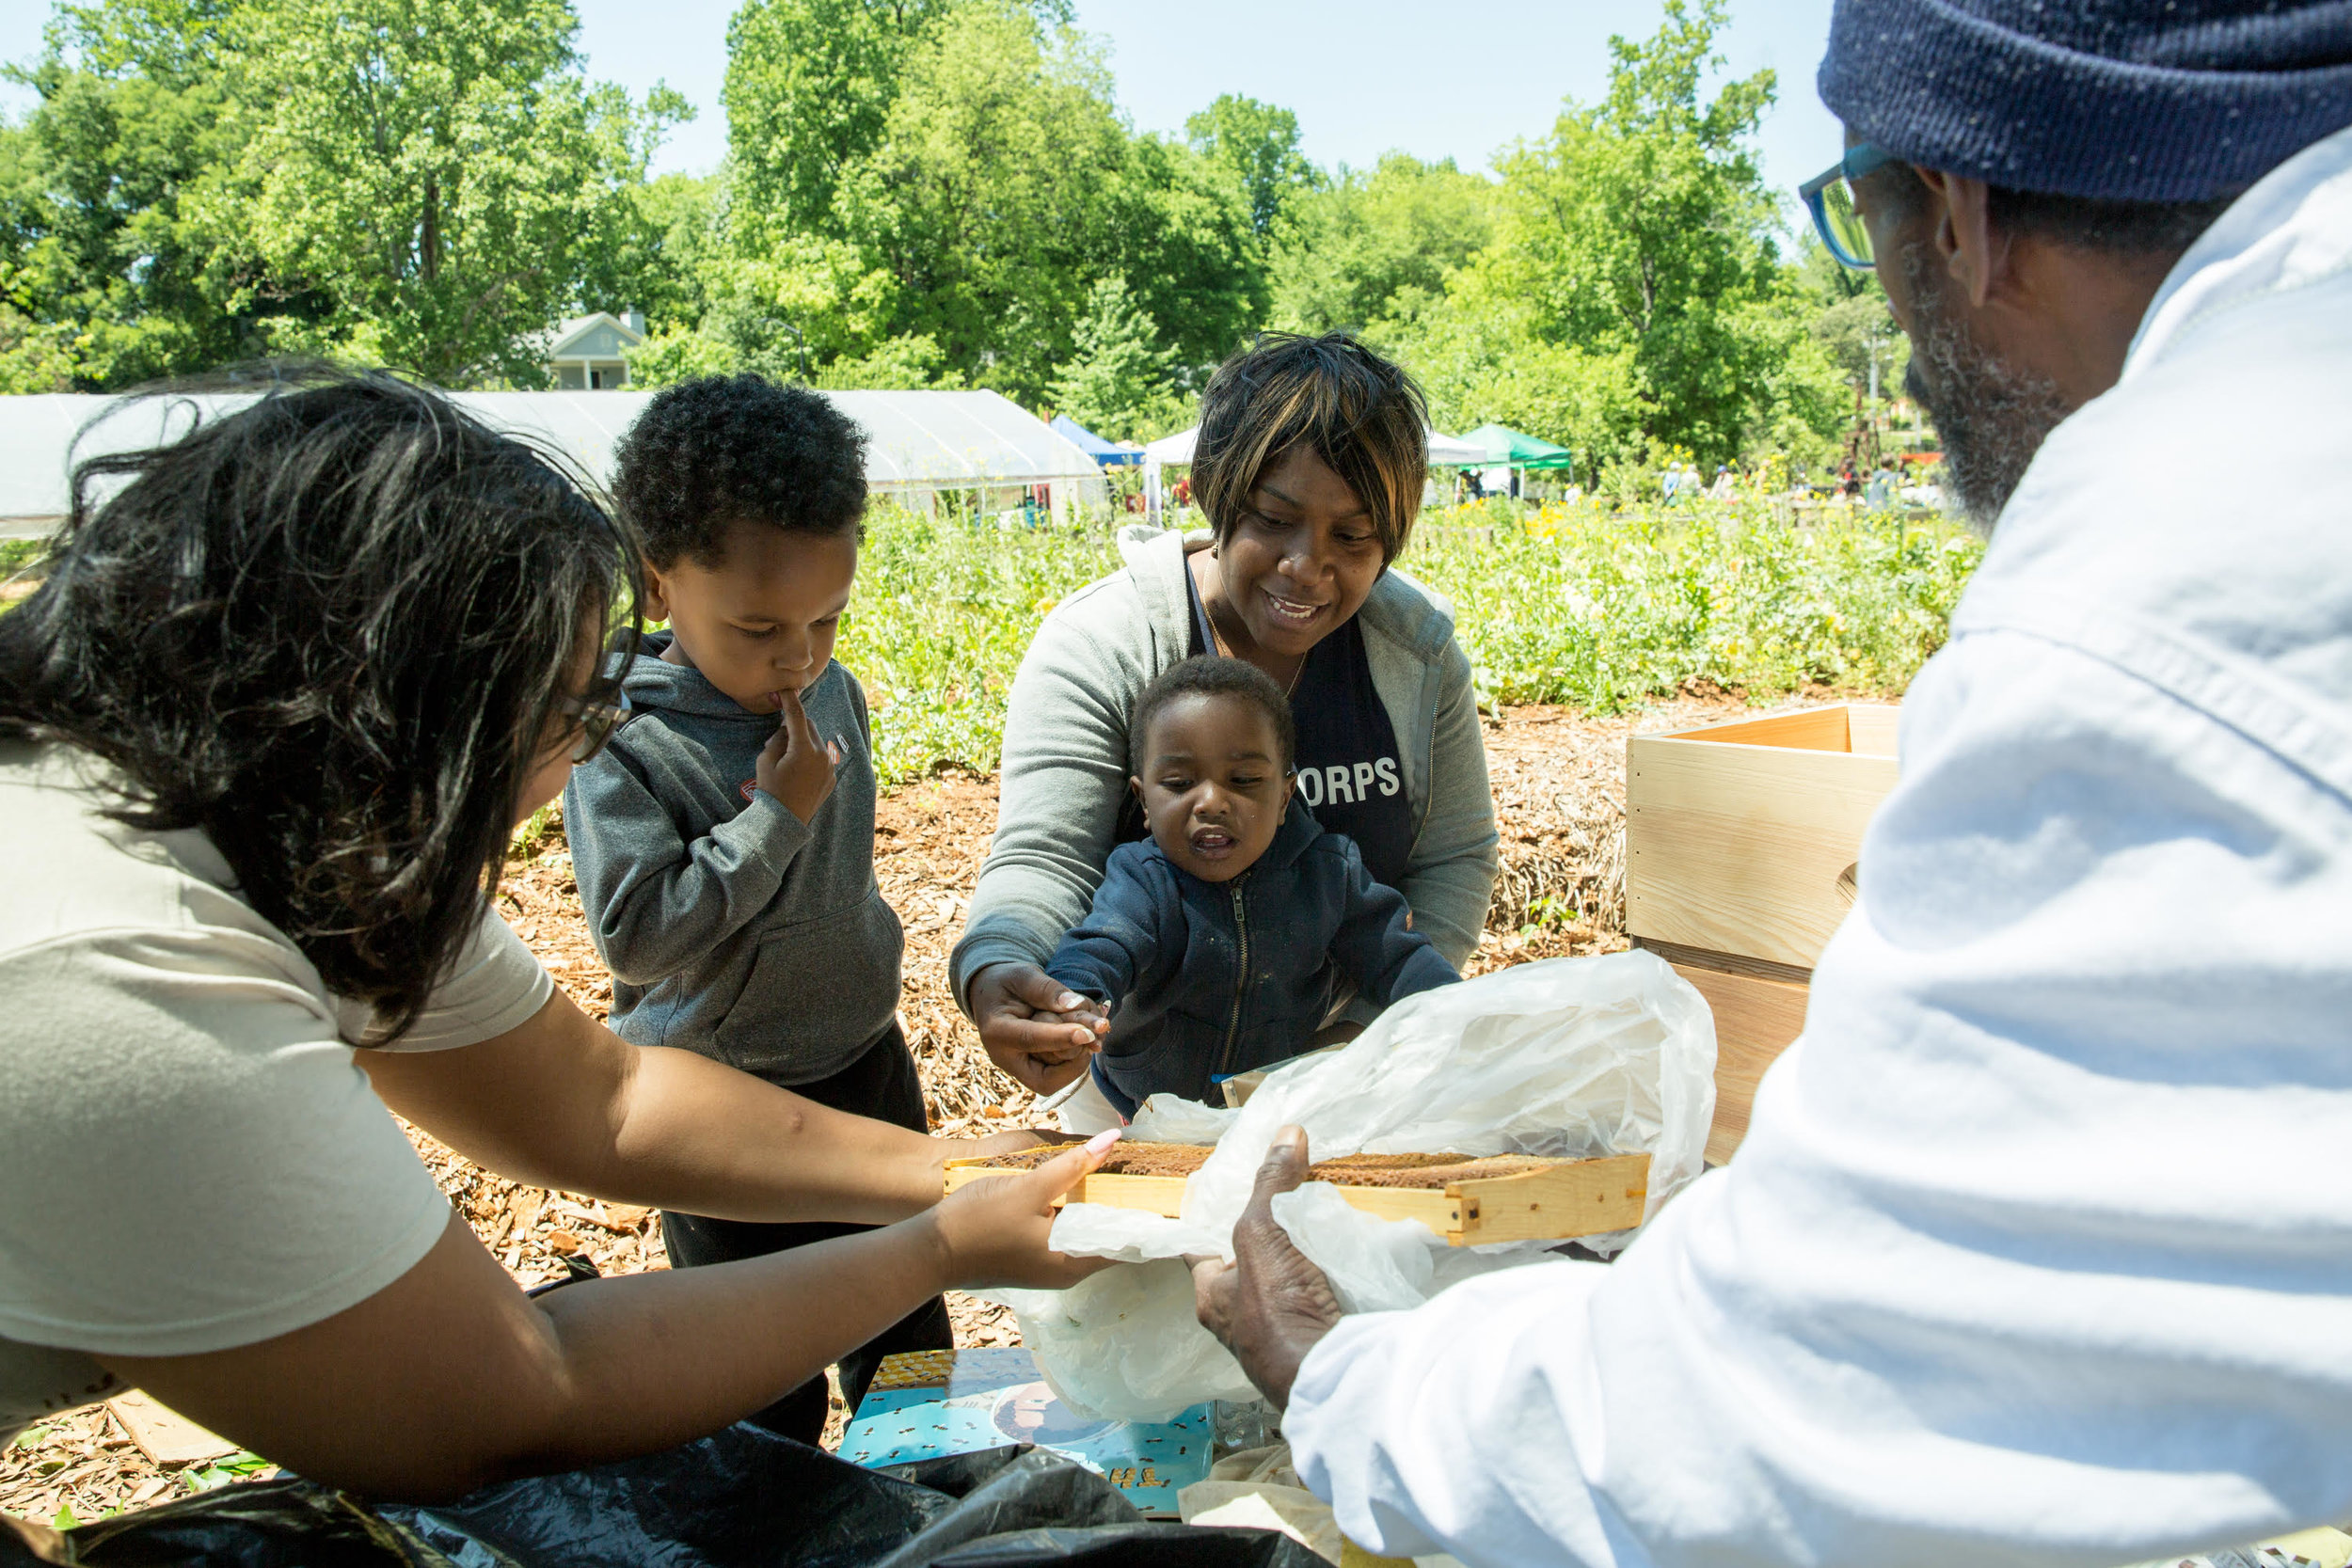 The Kids Corner at Soil Festival 2018 is better than ever!  Click here to learn more about the activities we have planned.